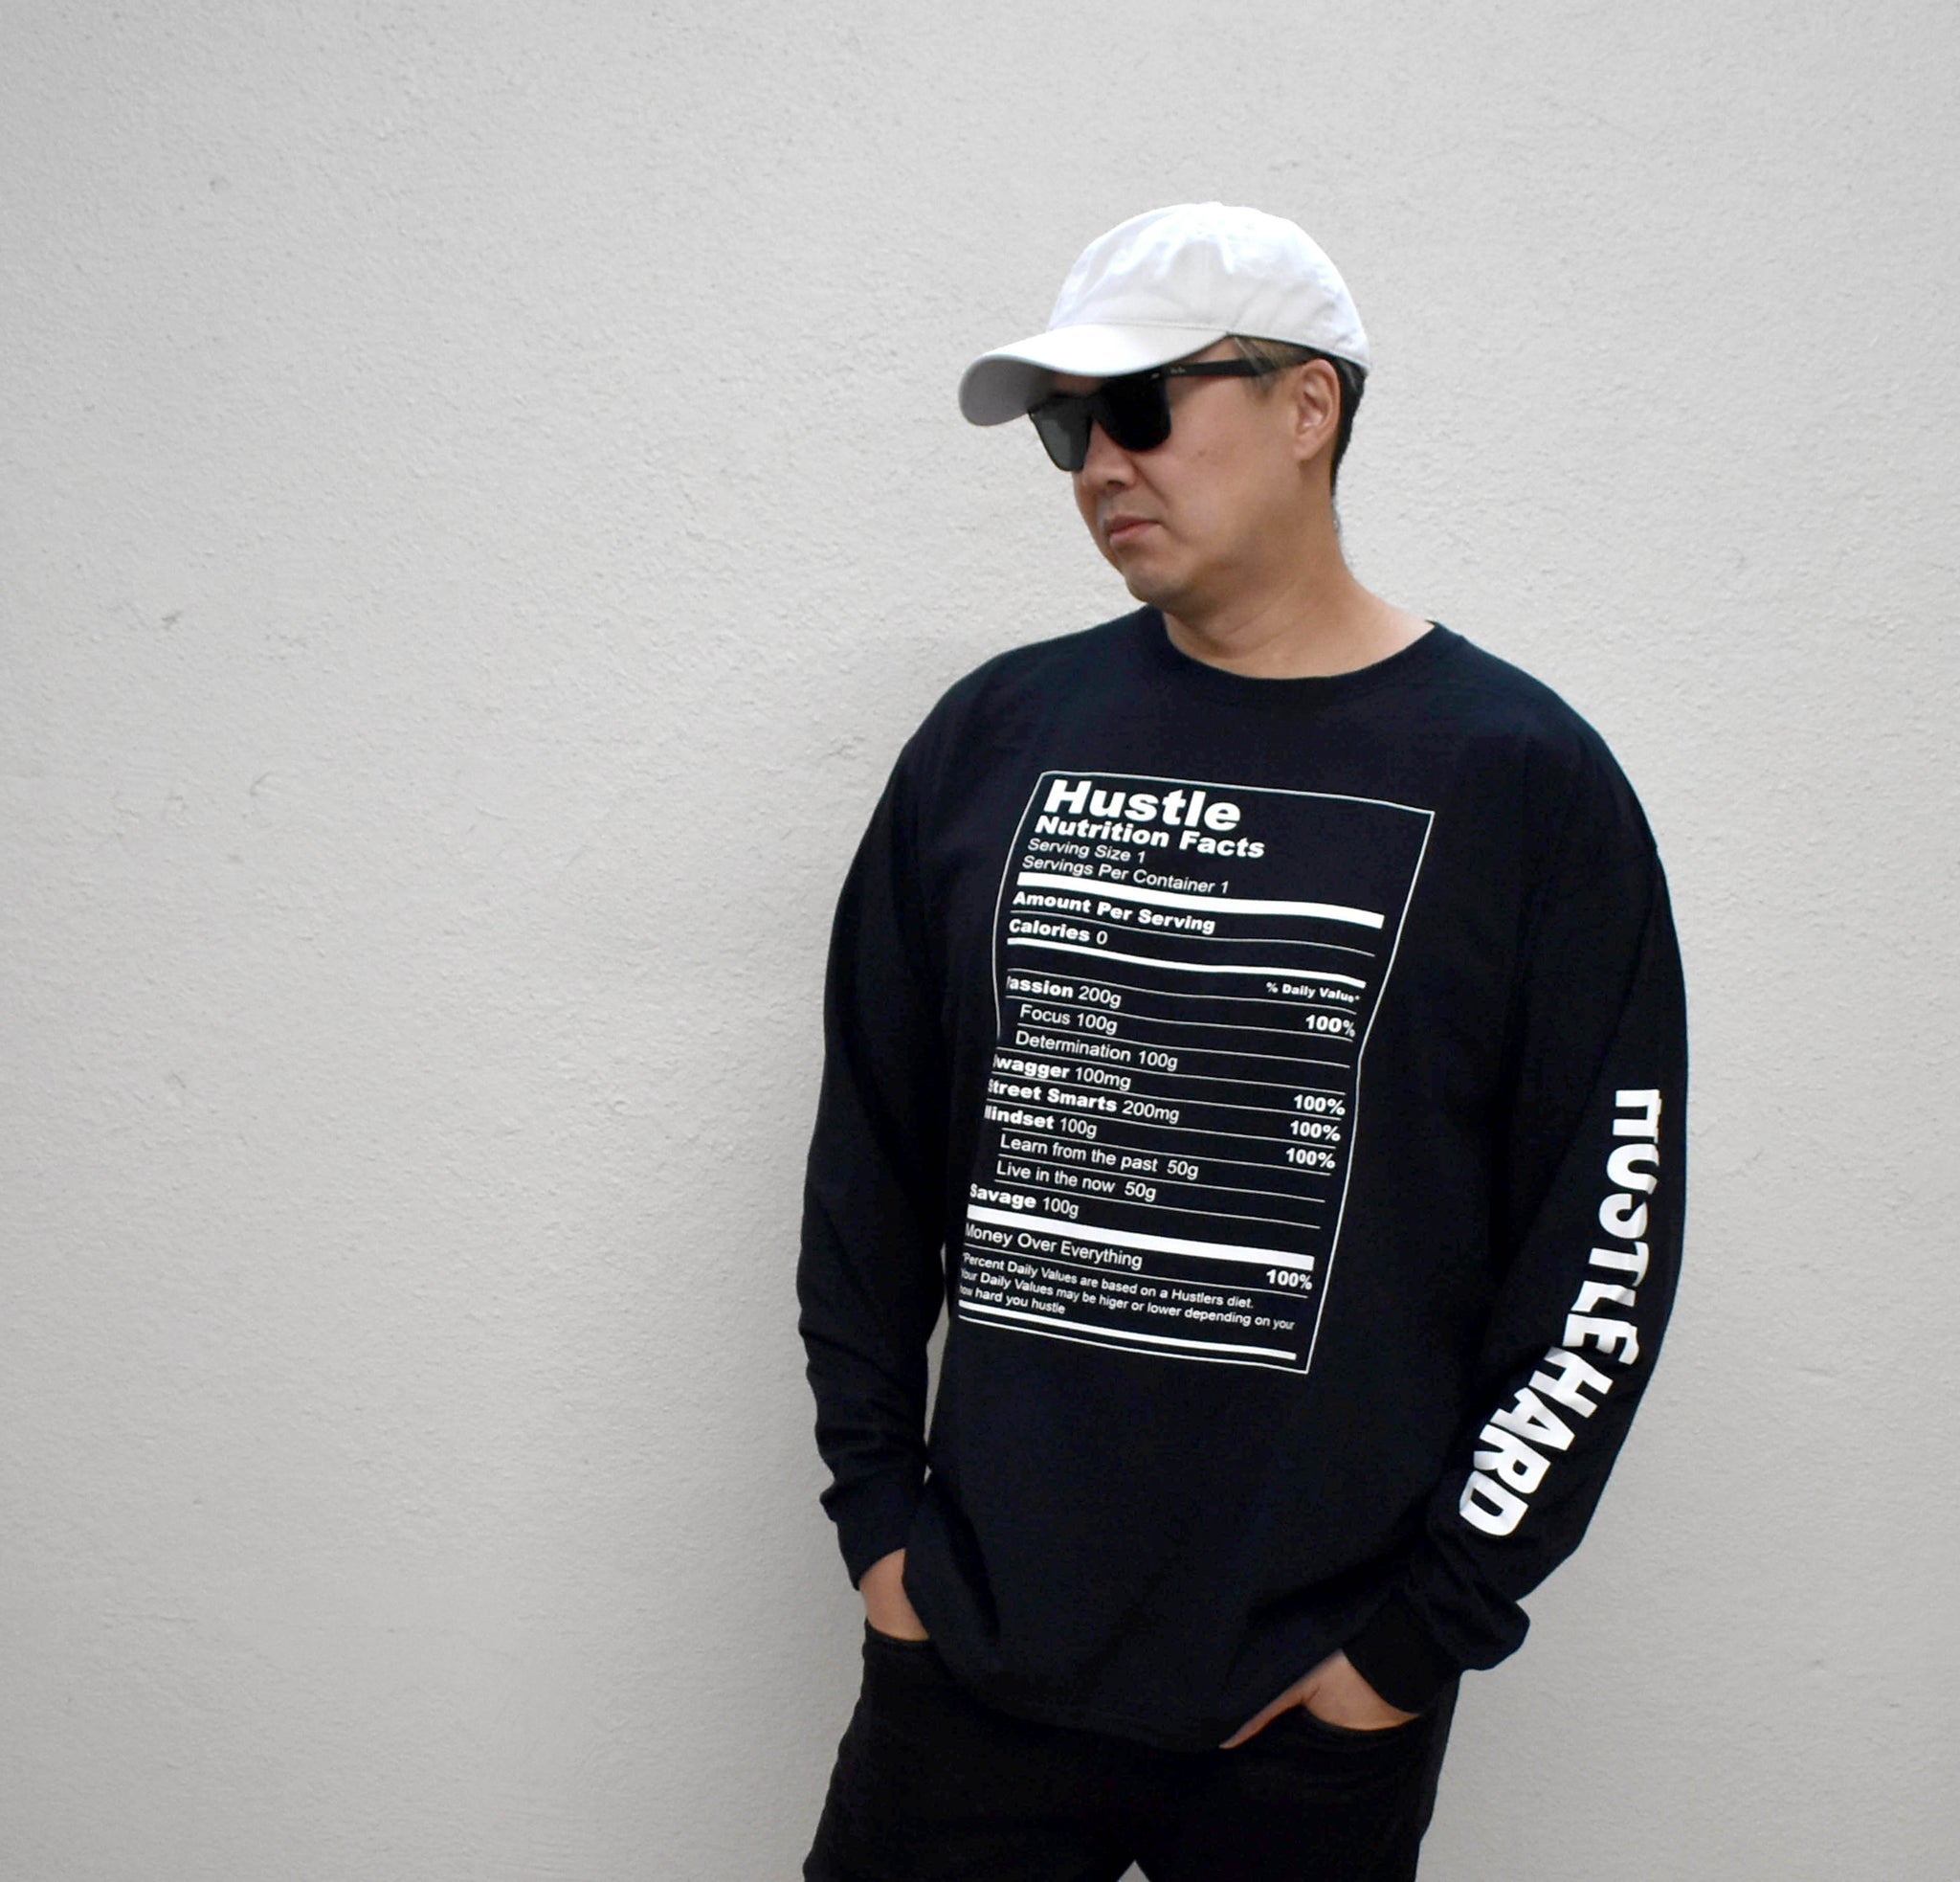 Hustle Ingredients Graphic Long Sleeve Shirt - Hype Means Nothing